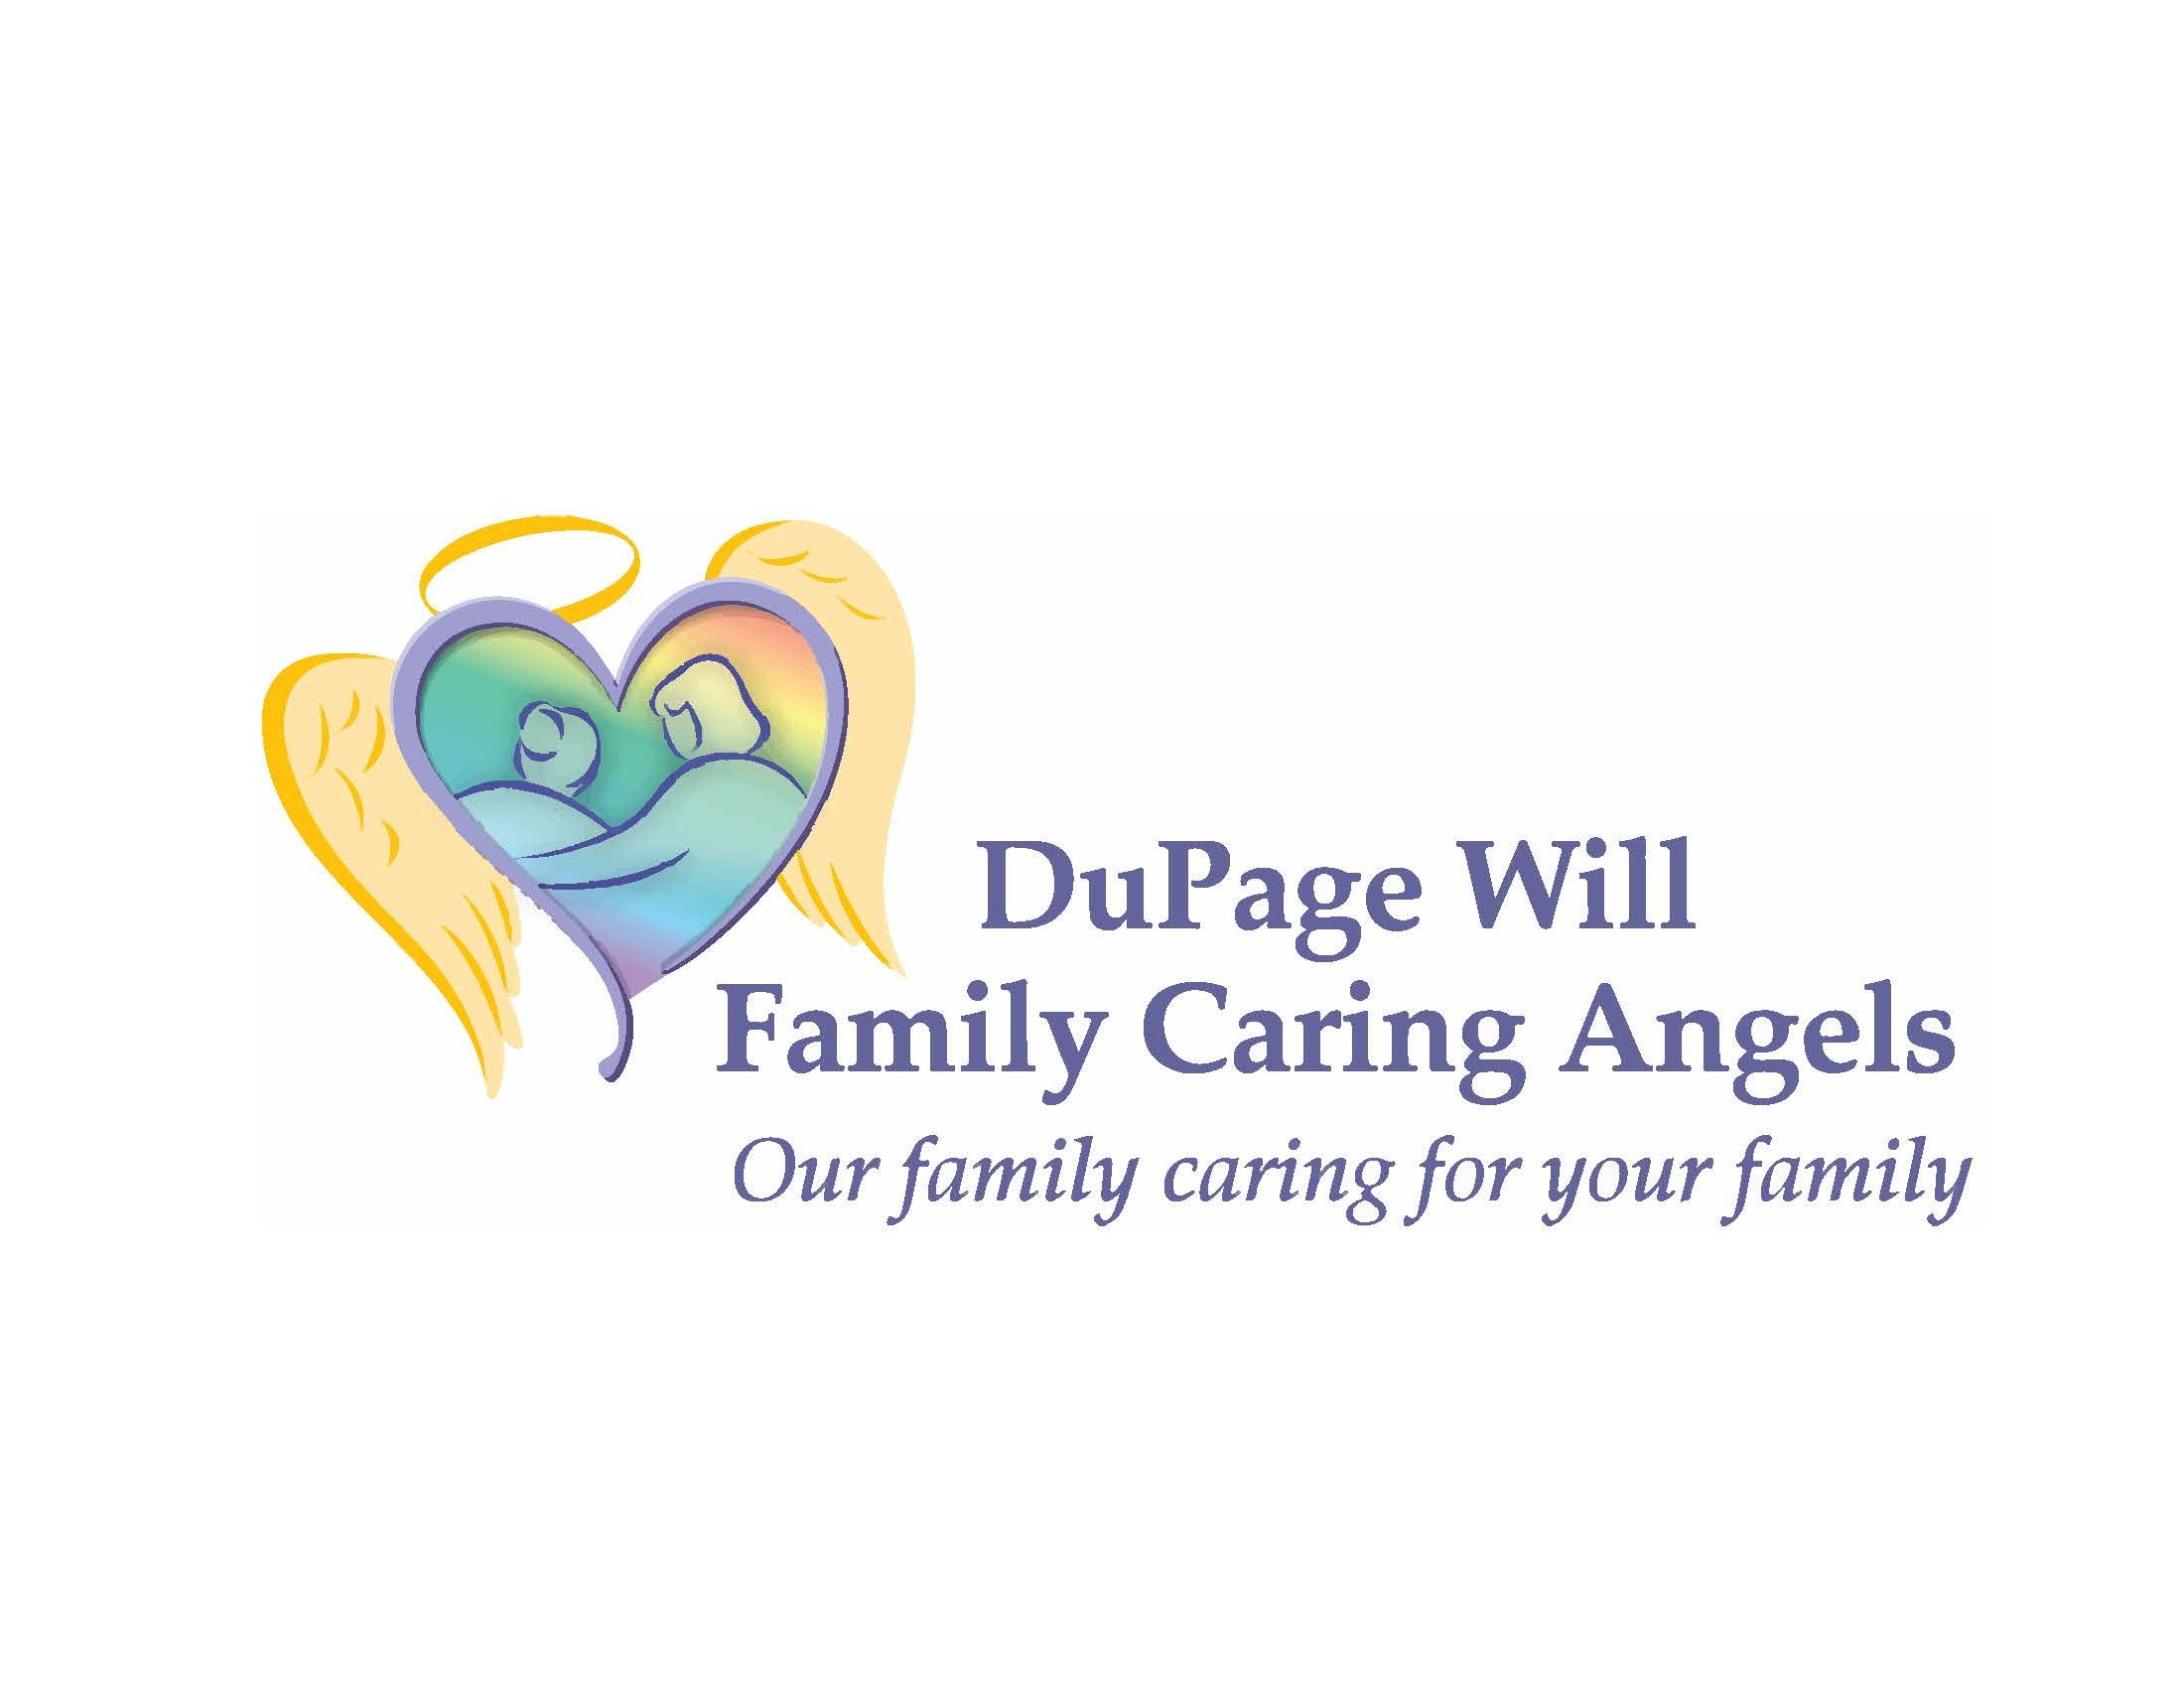 Dupage Will Family Caring Angels